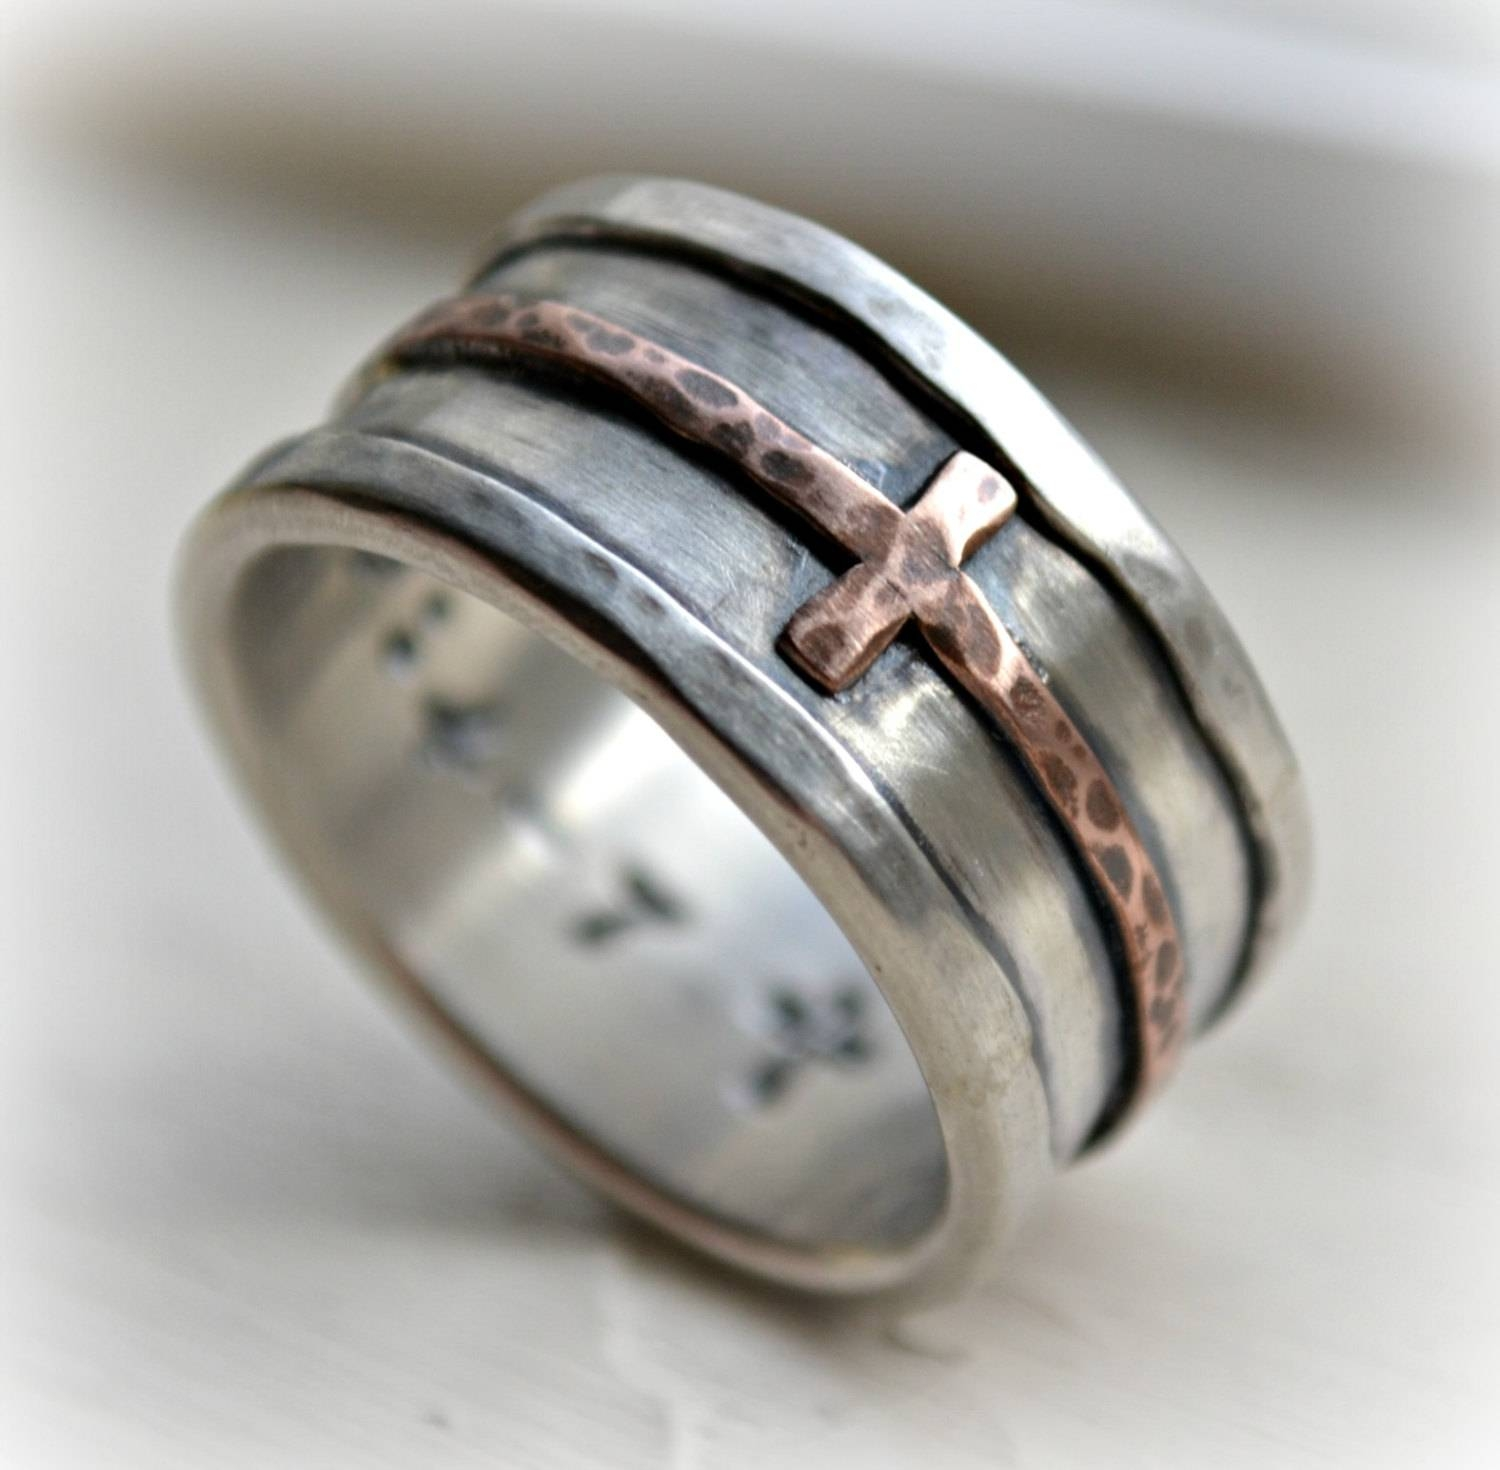 Mens Cross Wedding Band Rustic Hammered Cross Ring Oxidized With Regard To Mens Western Wedding Bands (View 5 of 15)